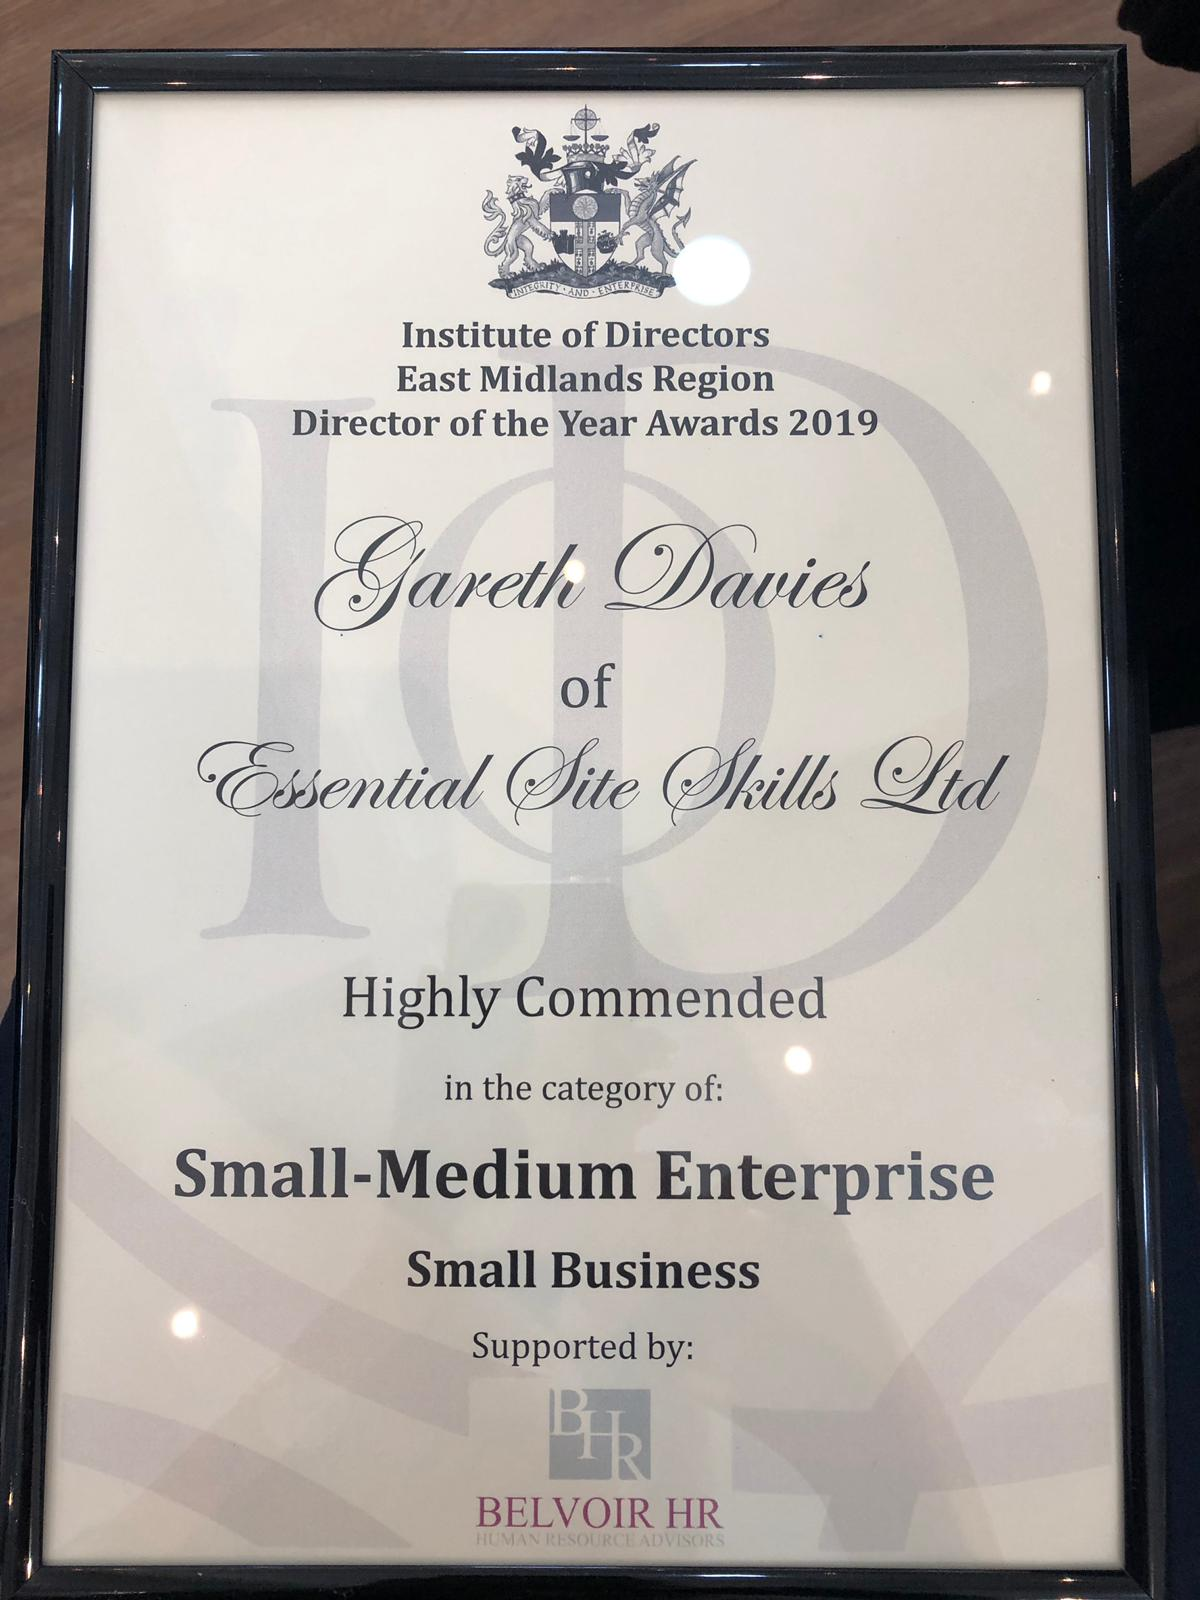 Award Certificate for the IOD Director of the Year Awards 2019